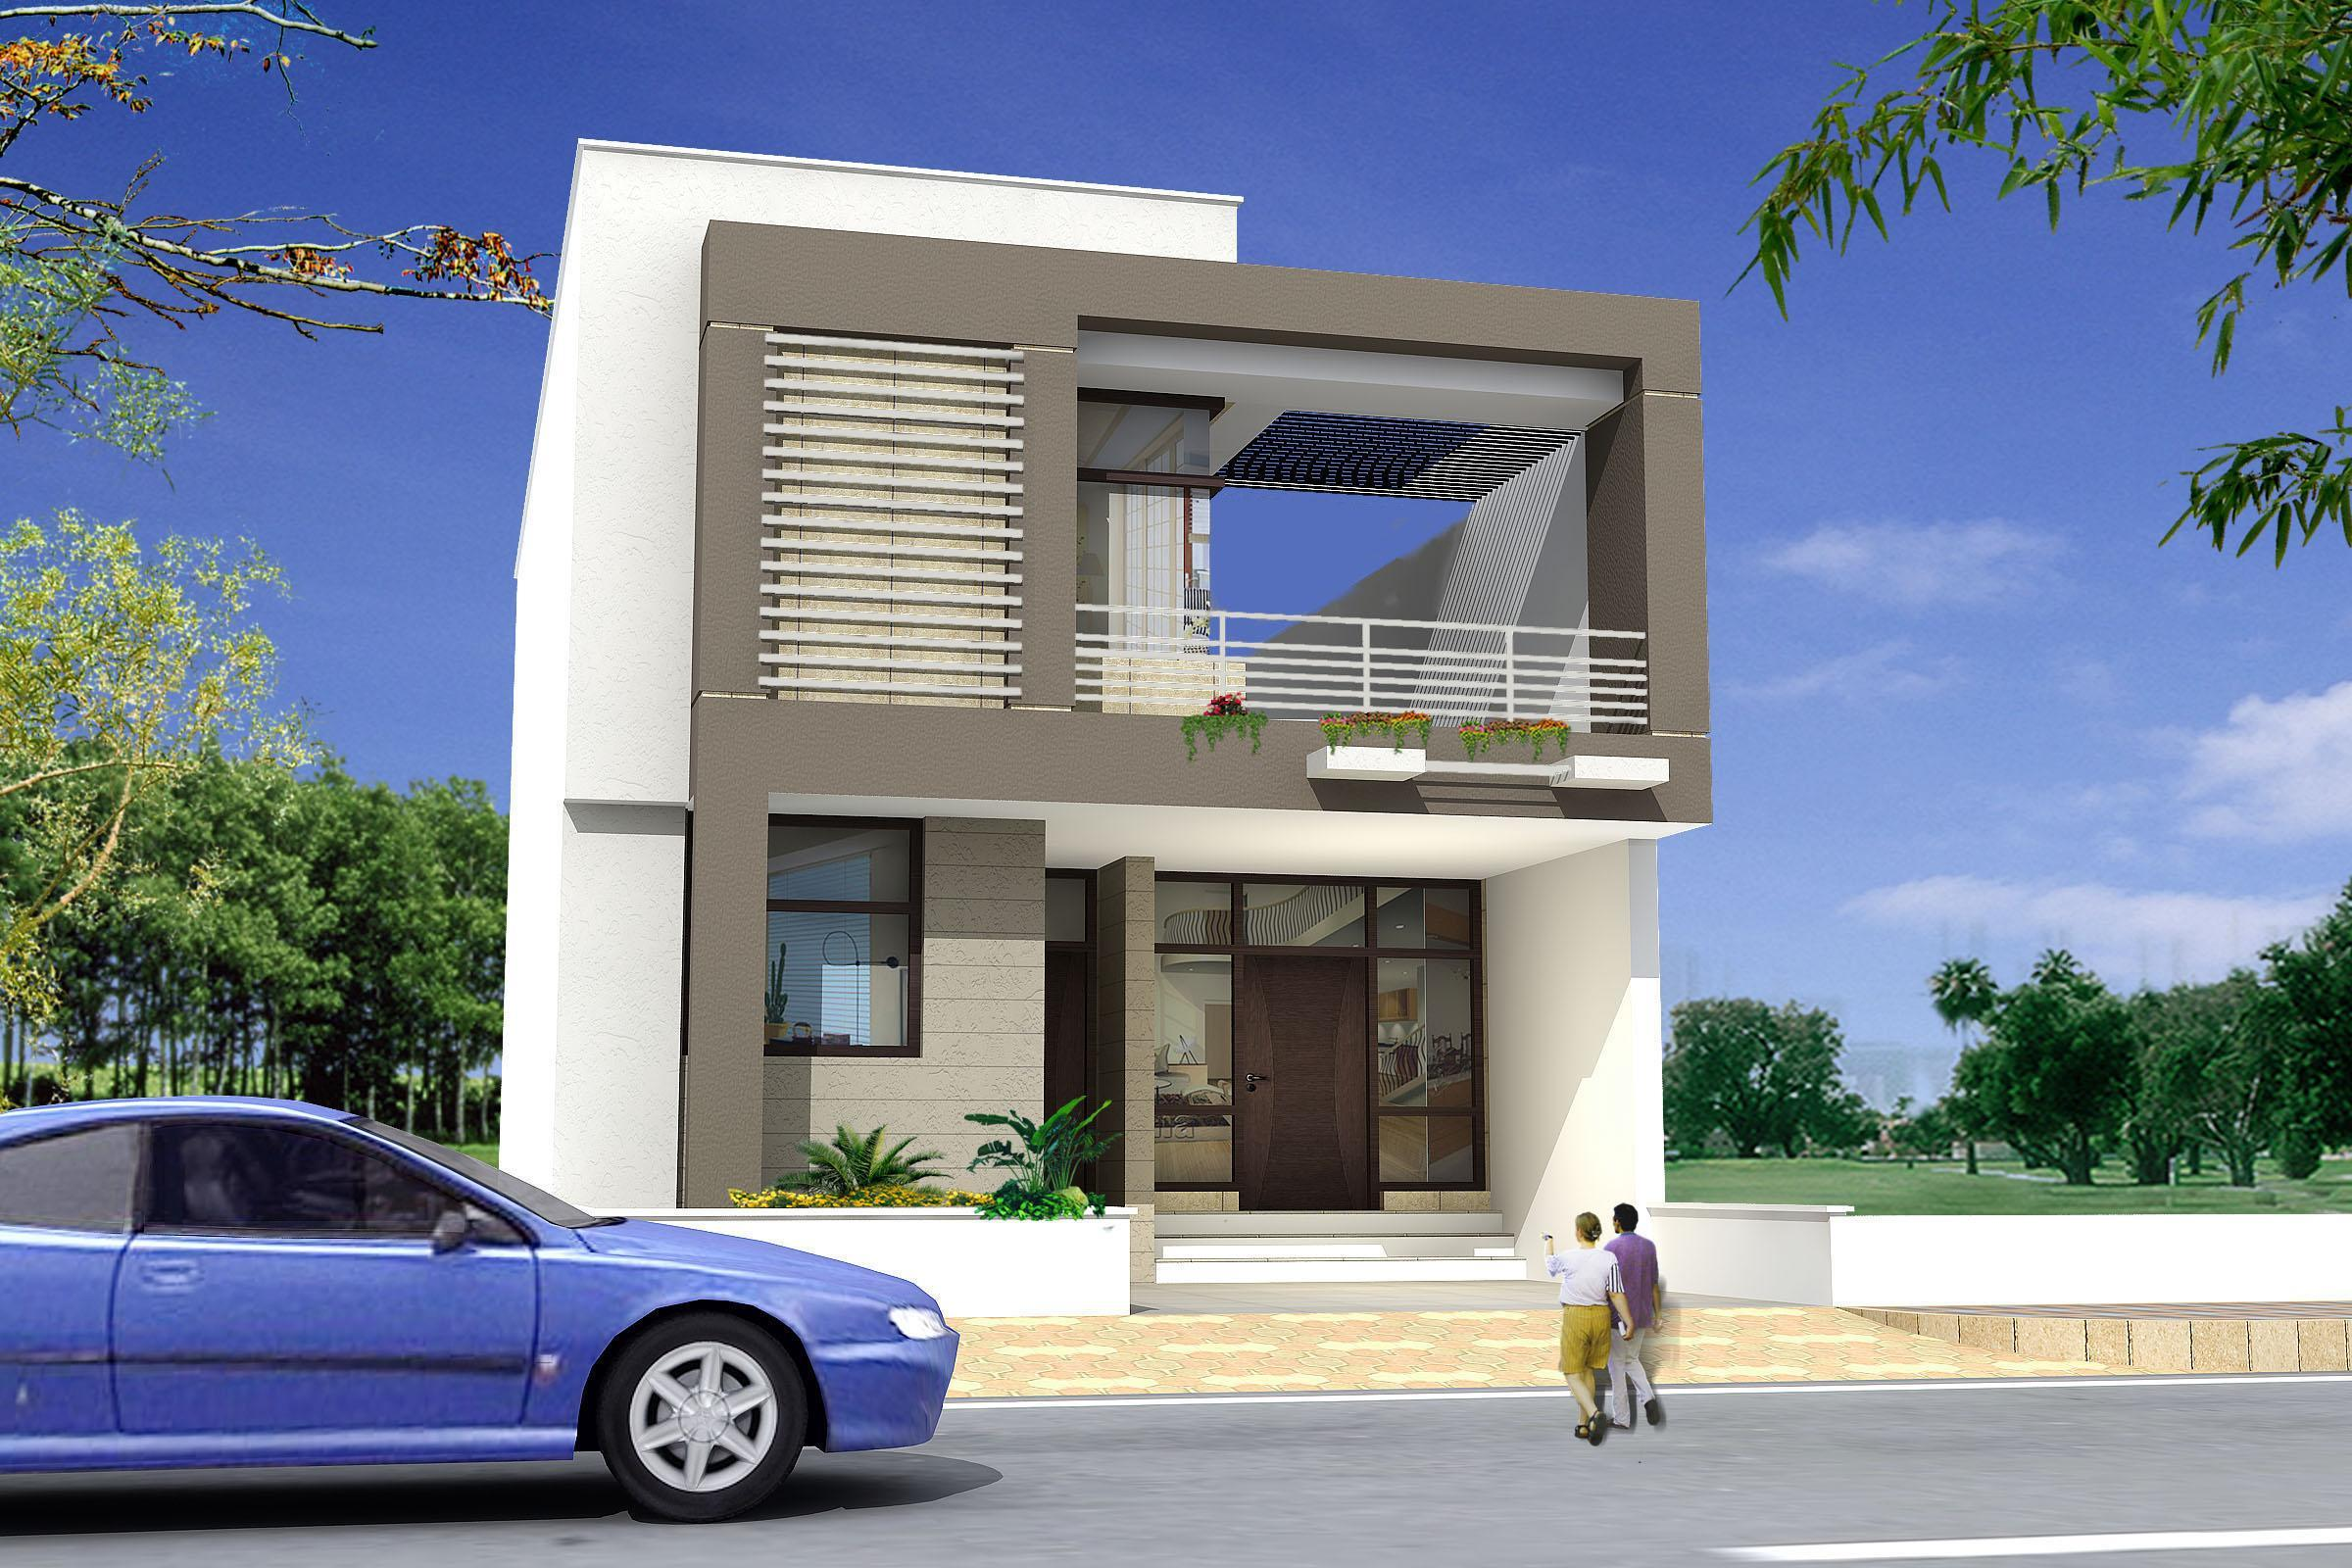 3d design of exterior house gharexpert for Exterior 3d design